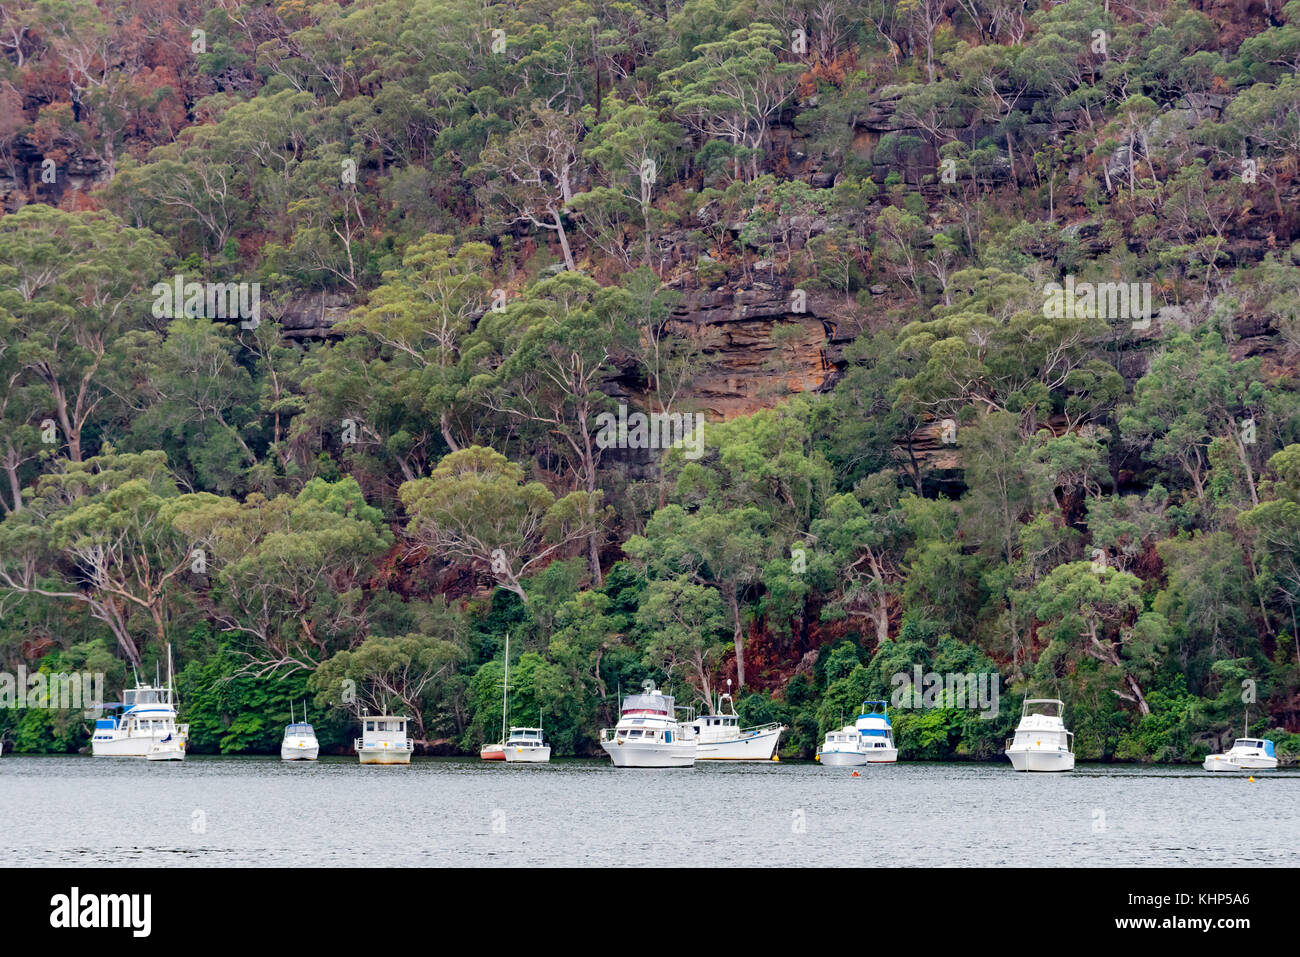 Boats moored in a quiet waterway to the north of Sydney with a backdrop of a sandstone cliff and gum trees. - Stock Image